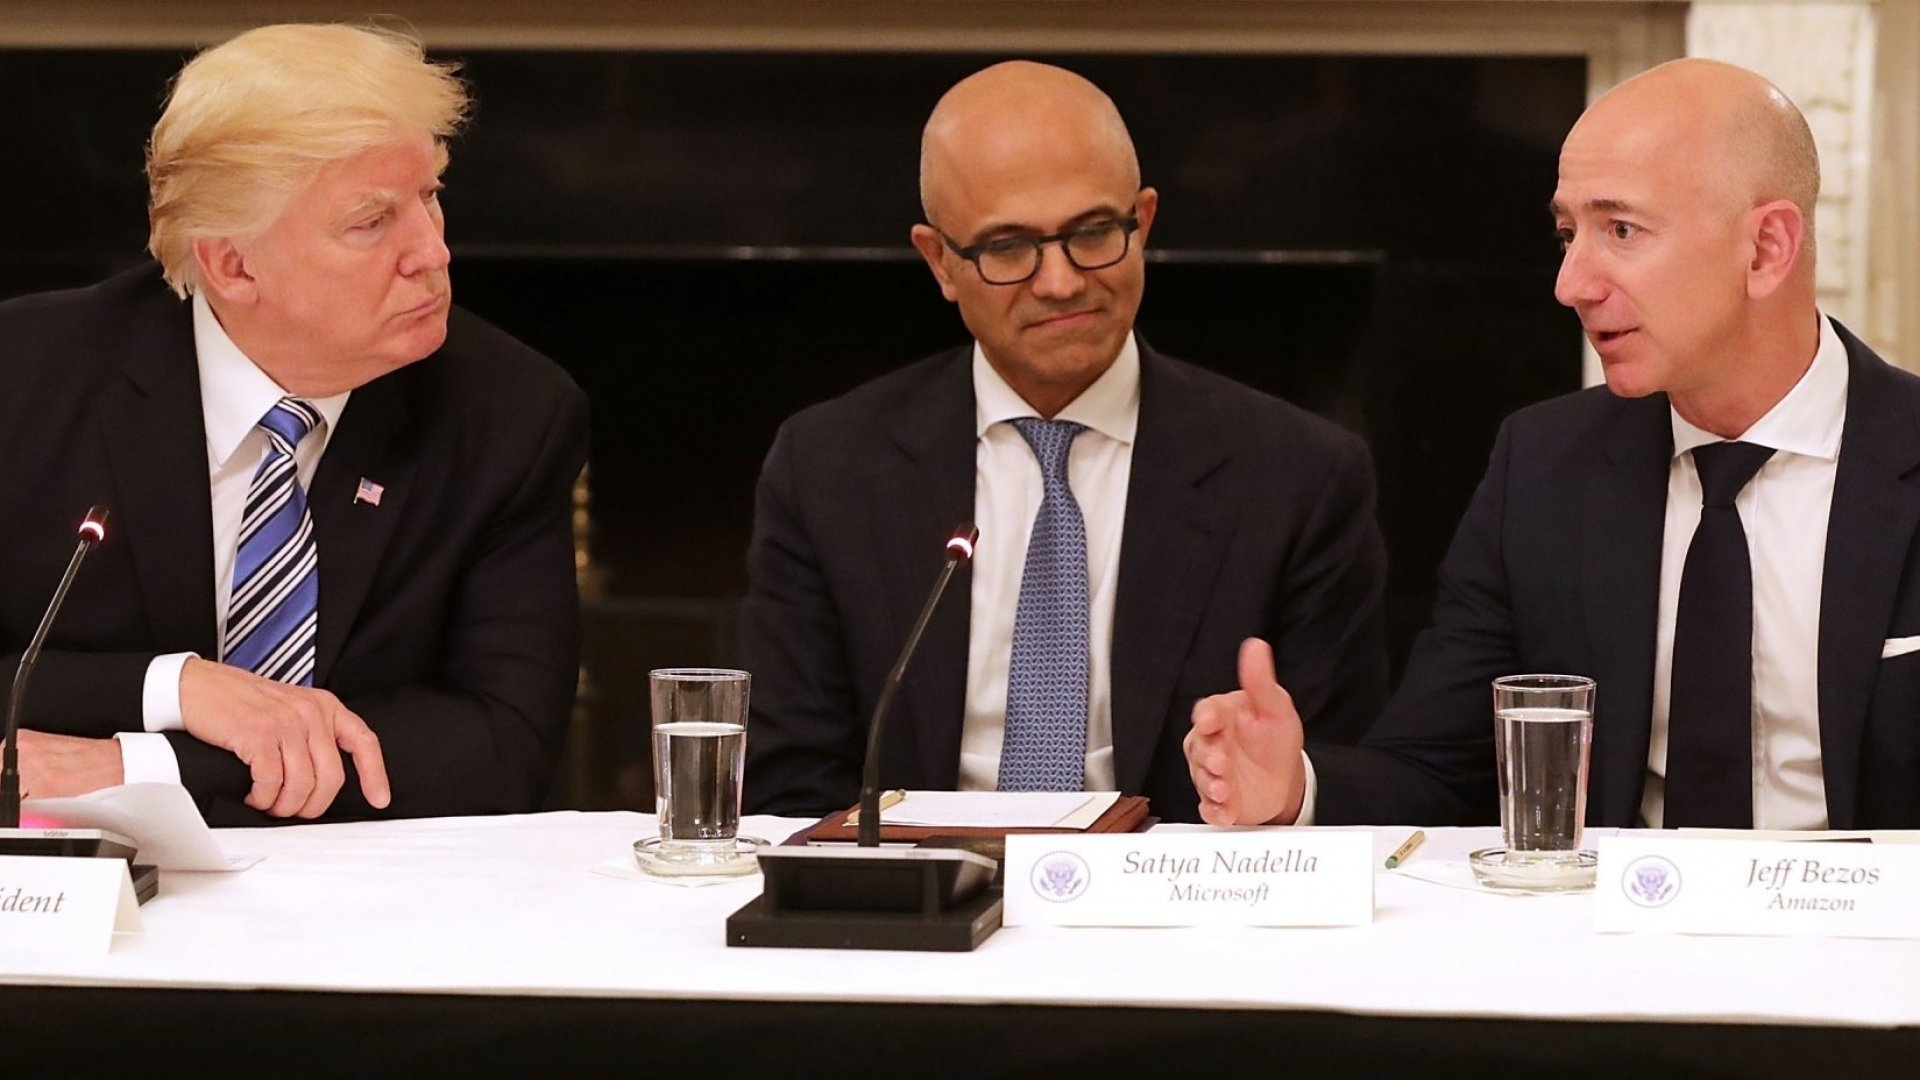 President Donald Trump, Microsoft CEO Satya Nadella, and Amazon founder and CEO Jeff Bezos.